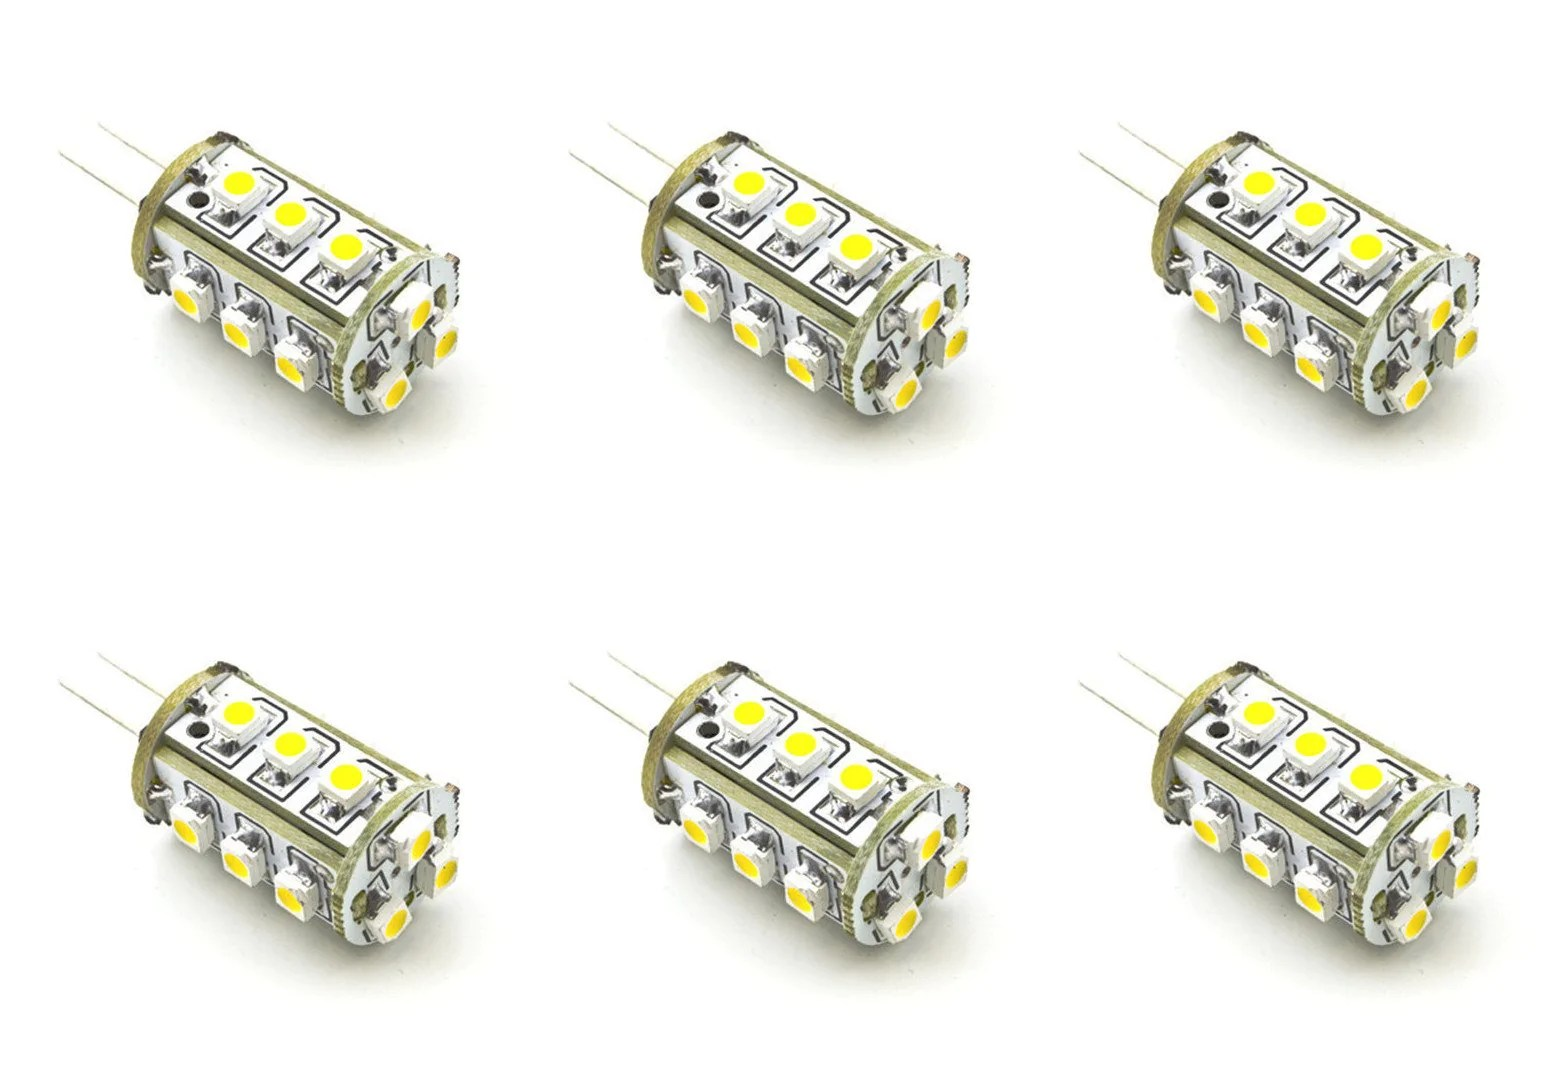 Ac Dc 12v 24v 1 8w 15x 3528 Bi Pin Led Light Bulb G4 12vmonster Lighting And More